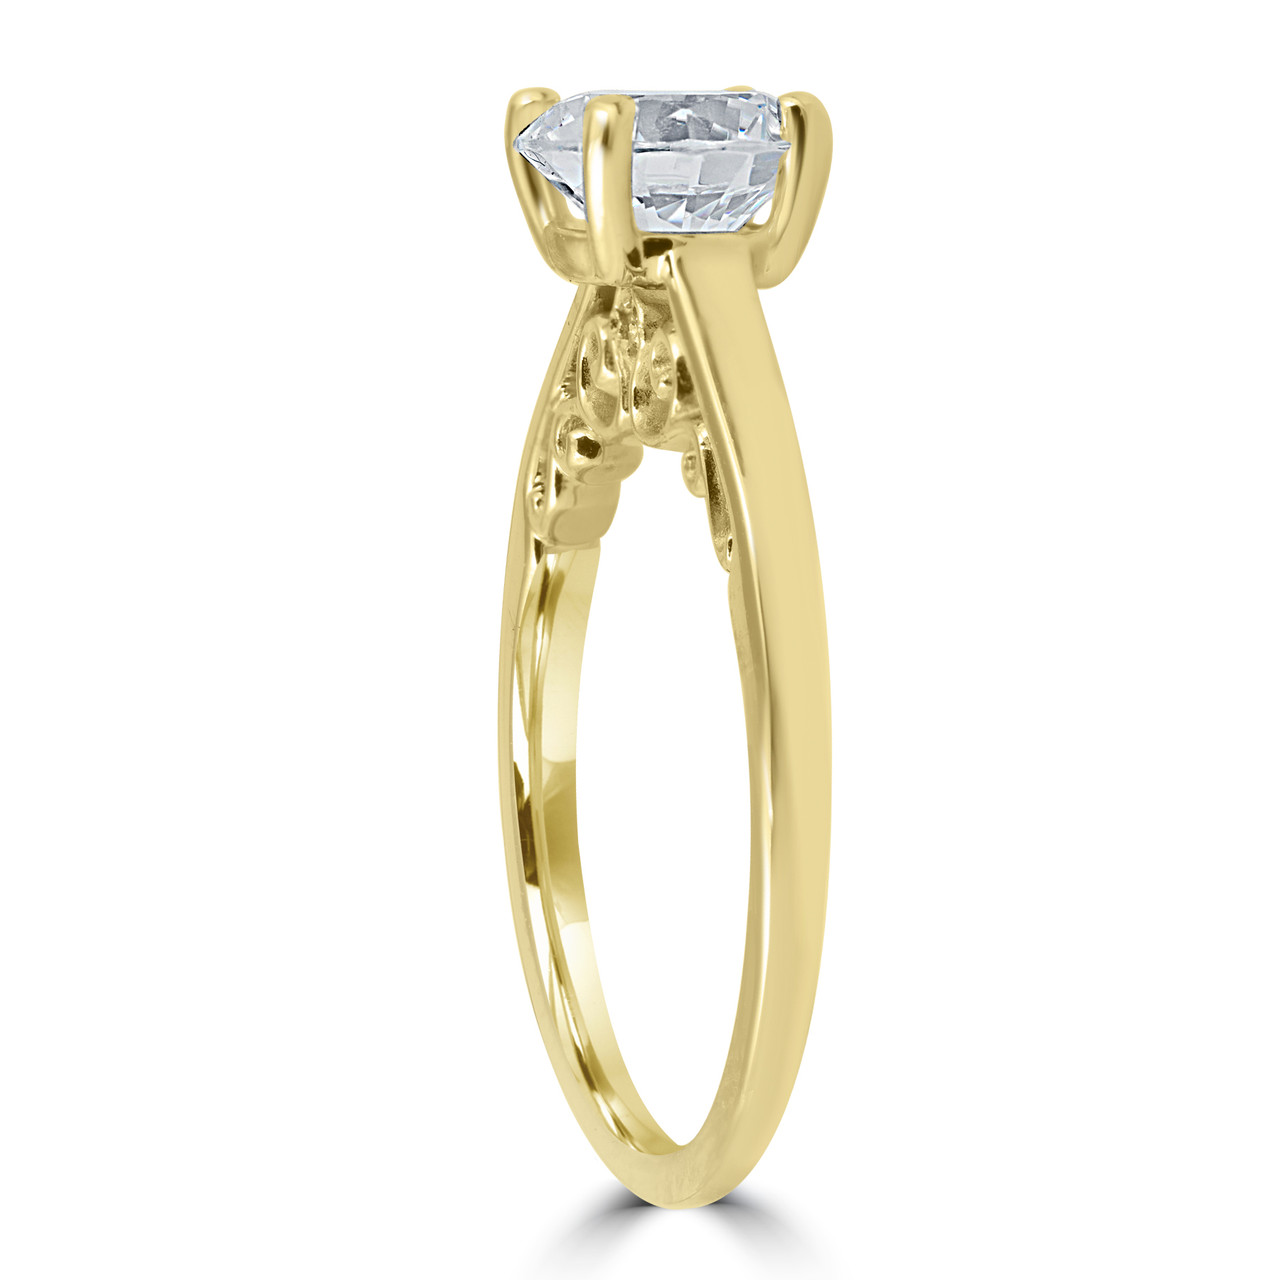 1 ct Diamond Round Brilliant Cut Solitaire Engagement Ring 14k Yellow Gold 5fd73179a